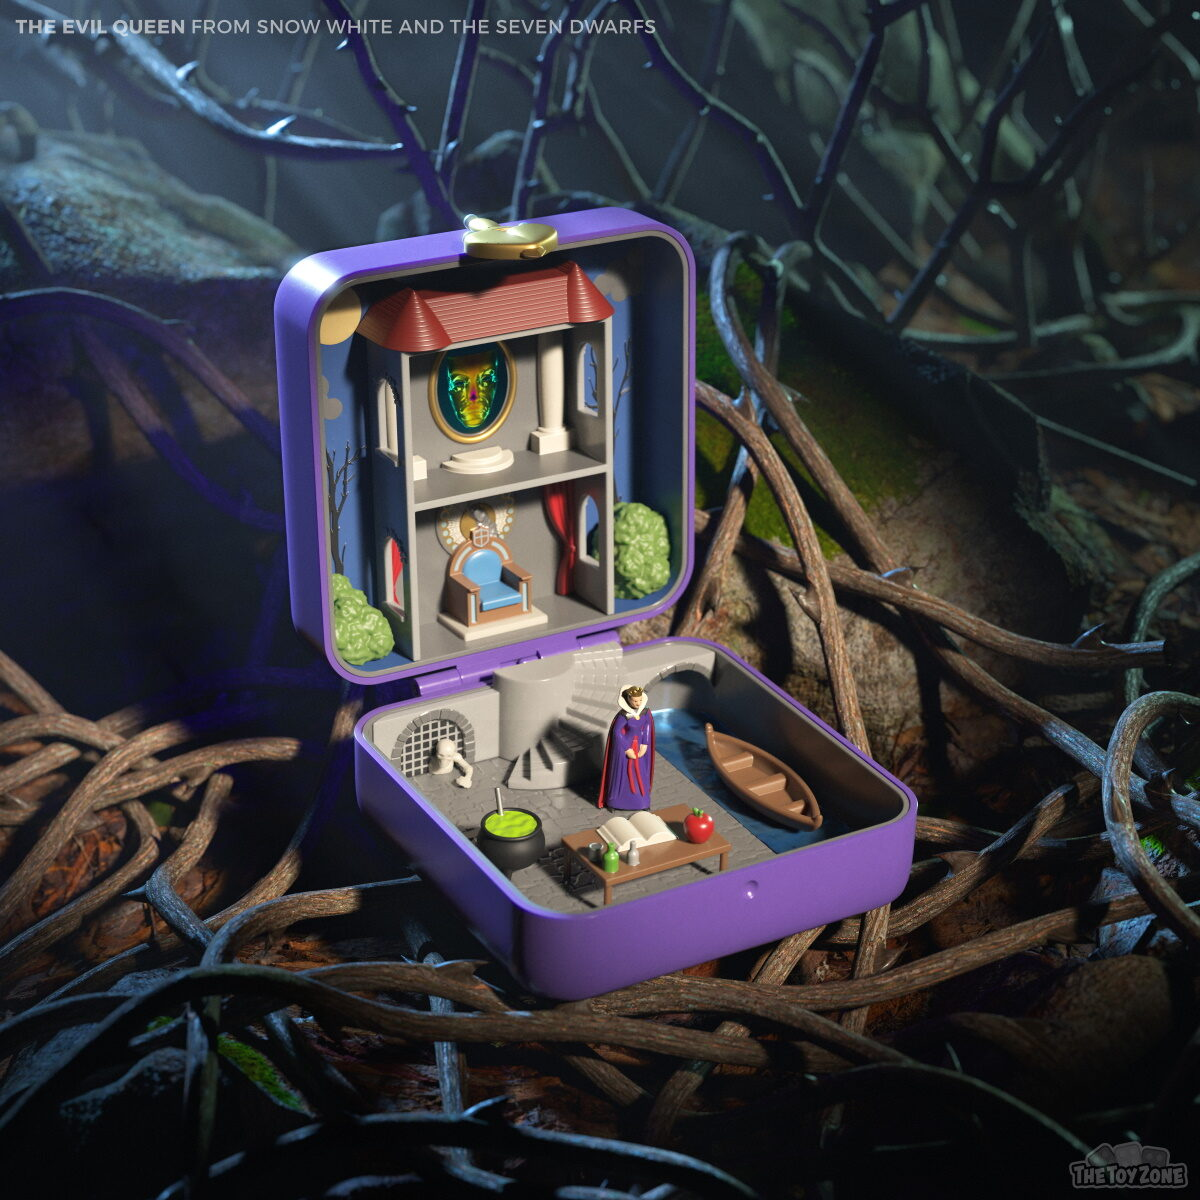 TheToyZone recreates the Evil Queen's lair with Polly Pocket